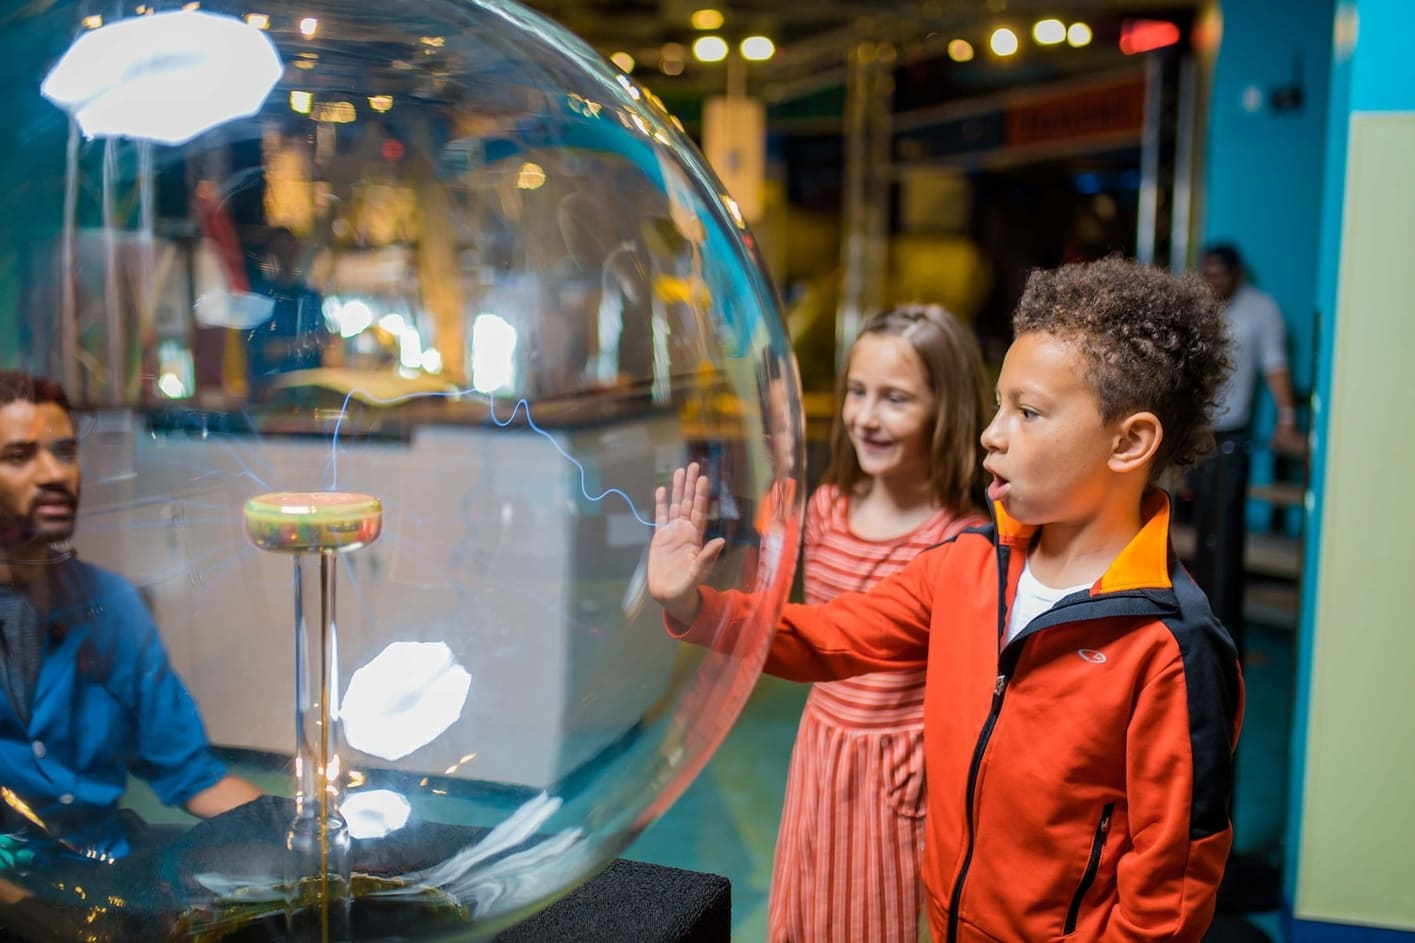 Discovery Children's Museum, a place to go in Las Vegas with kids